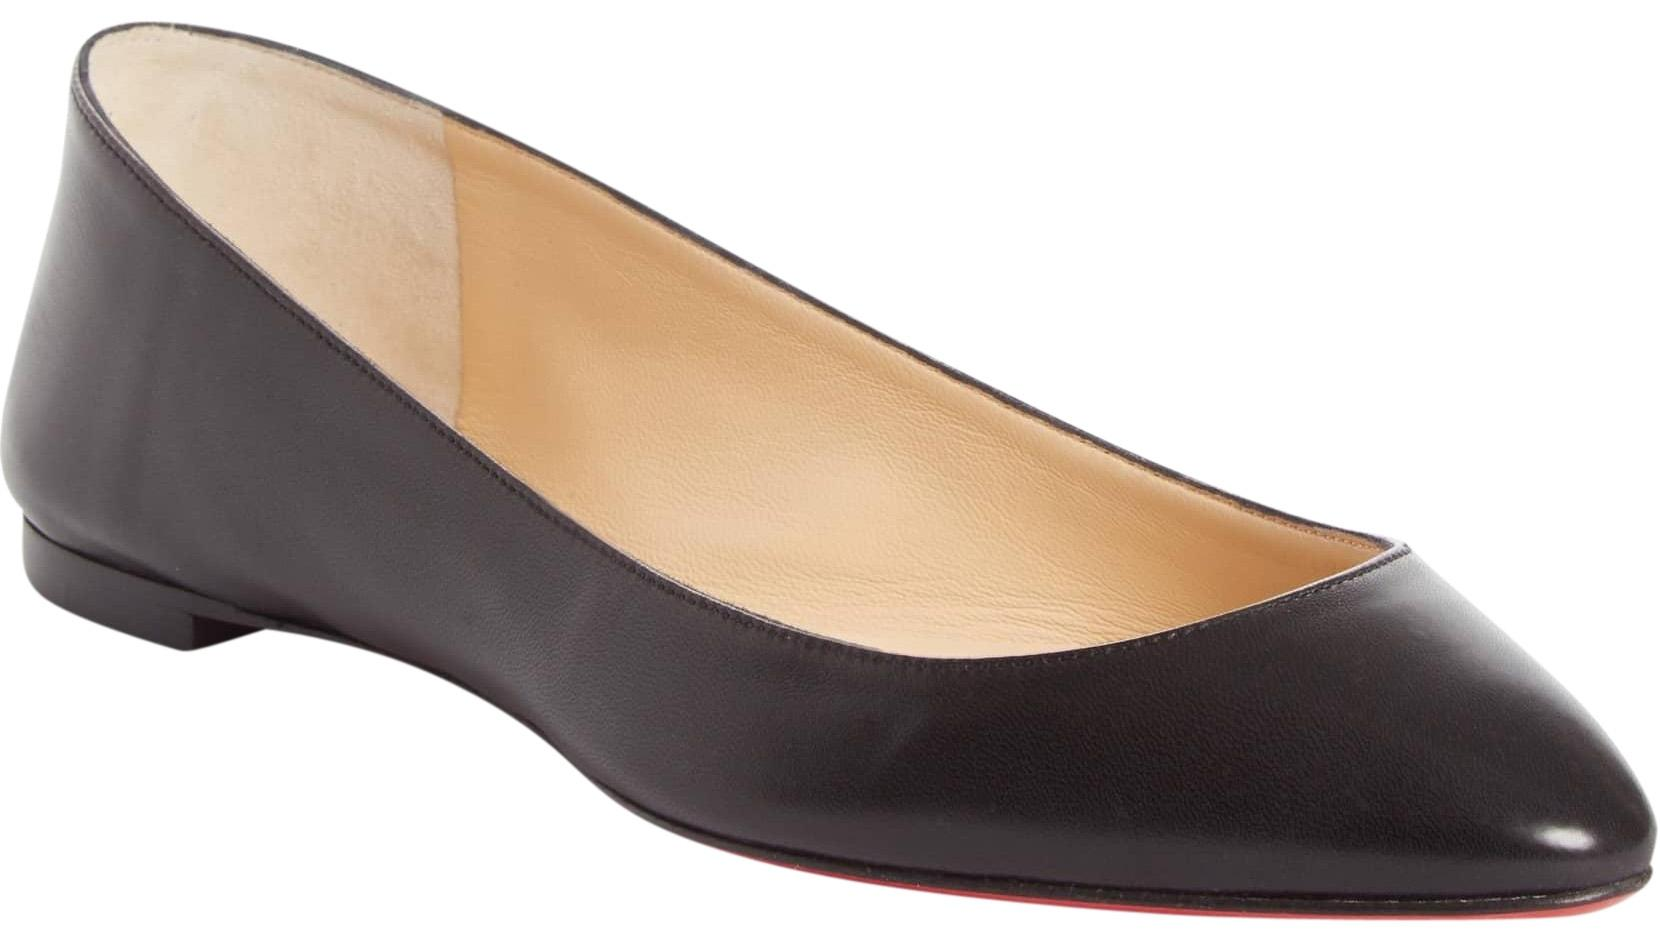 Christian Louboutin Black New Eloise Nappa Leather 35 Flats Size US 5 Regular (M, B)